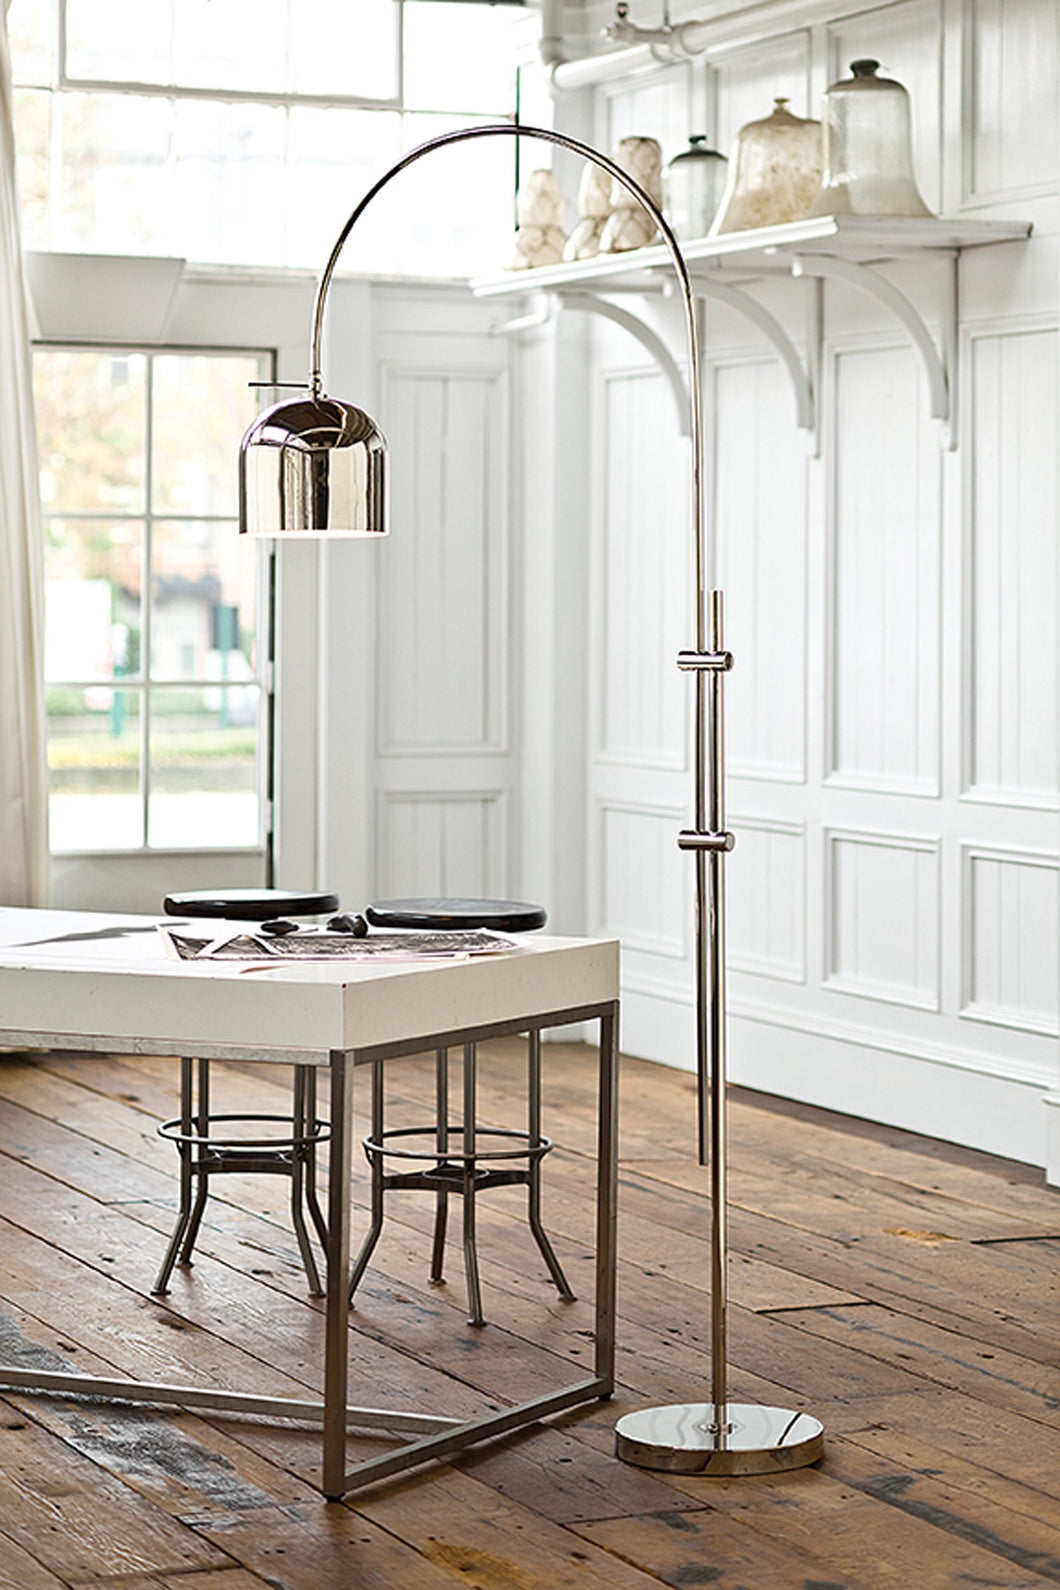 Arc Floor Lamp With Metal Shade – Laura of Pembroke